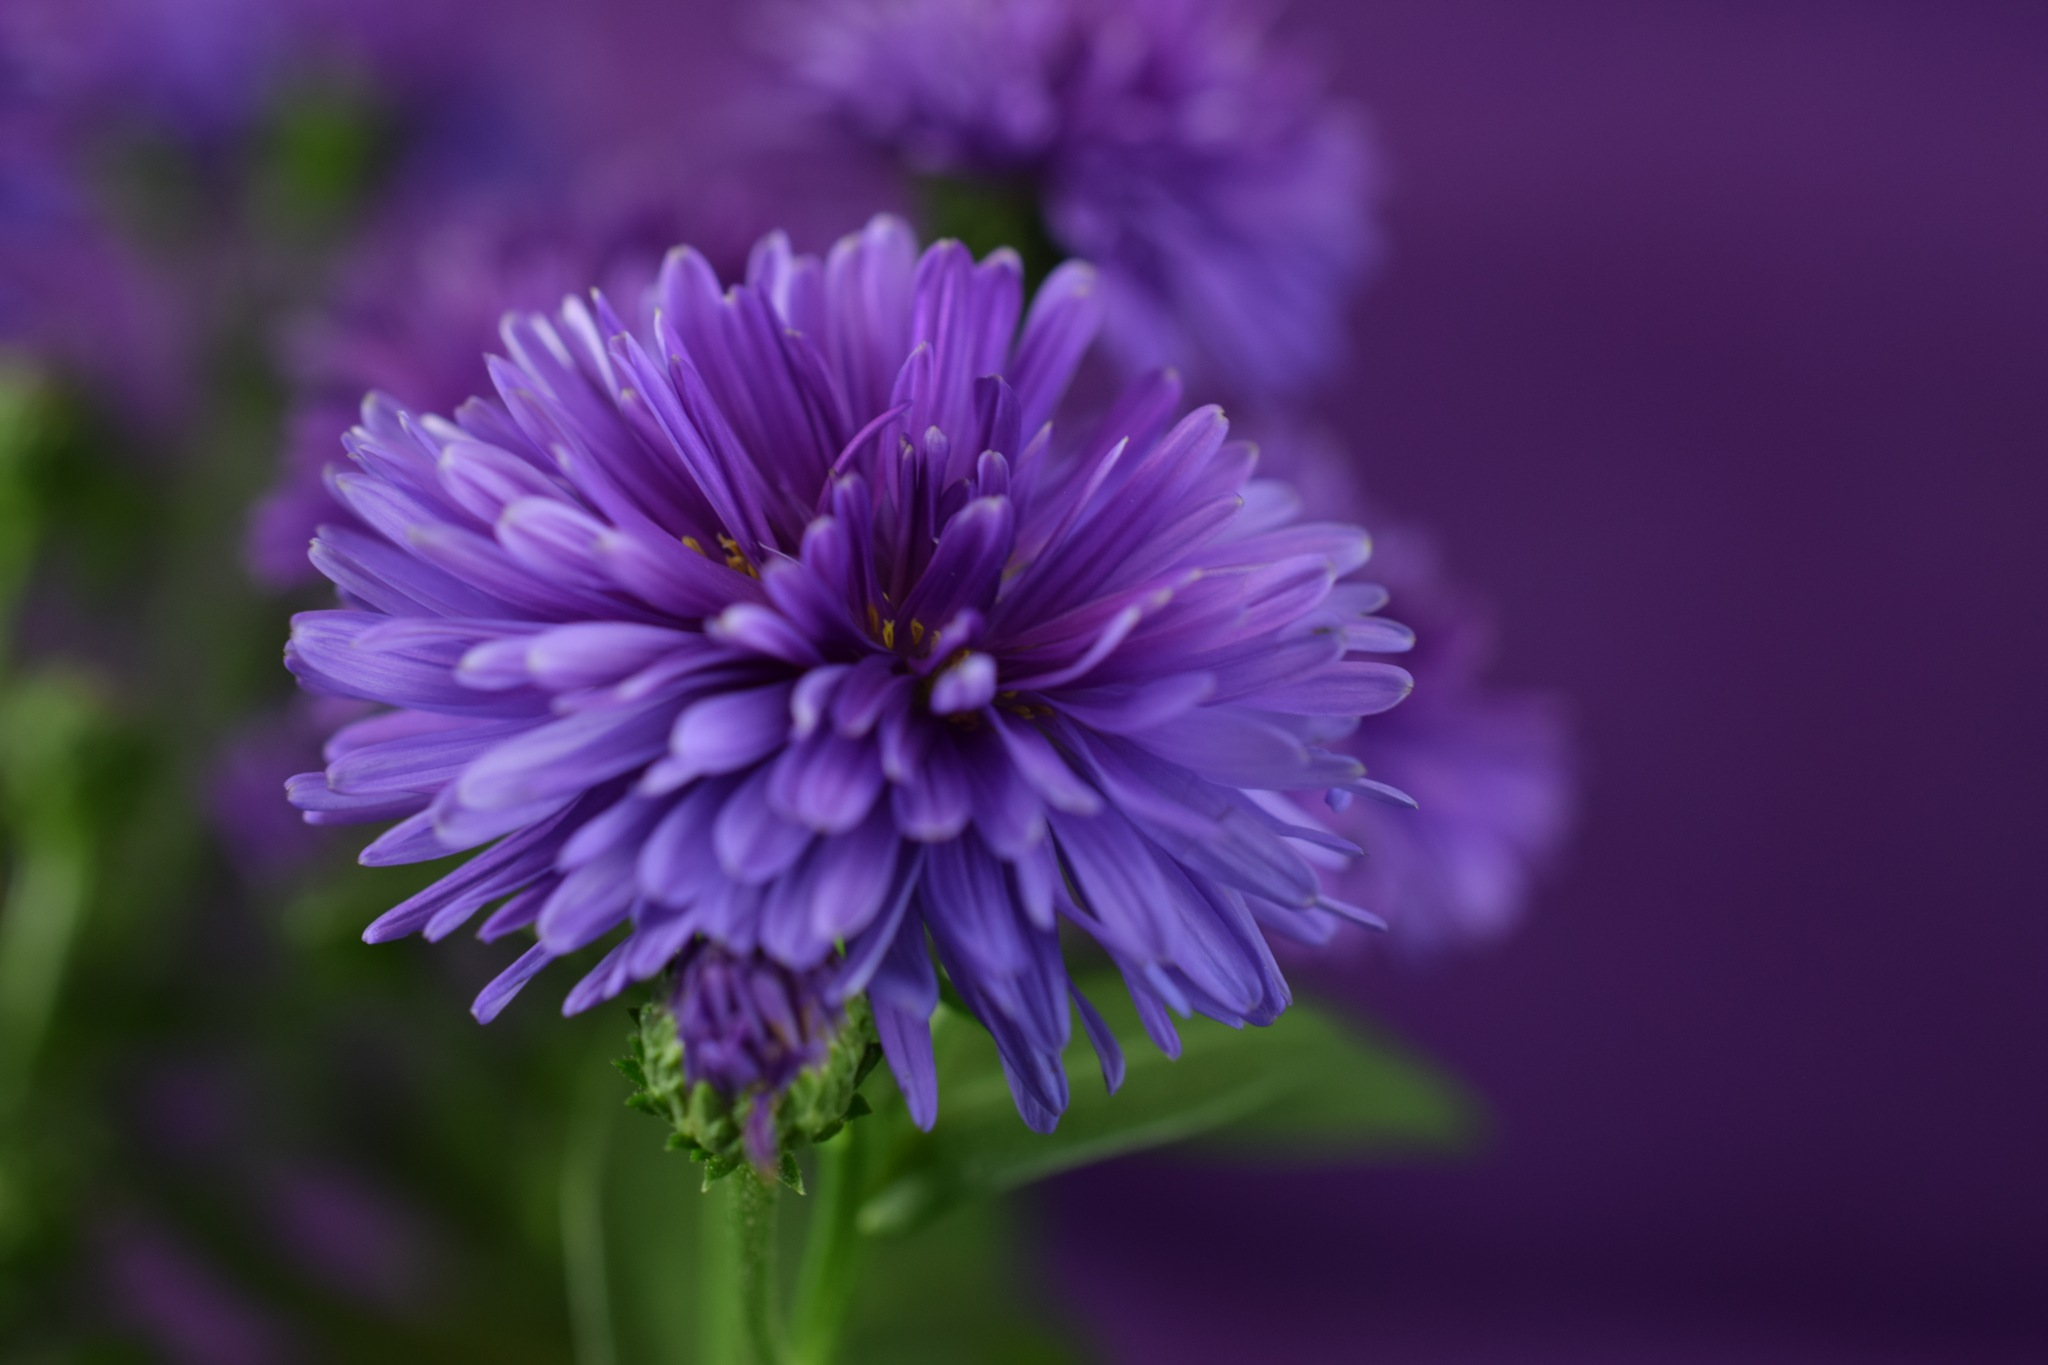 Aster flower victoria by Theresia Buskas